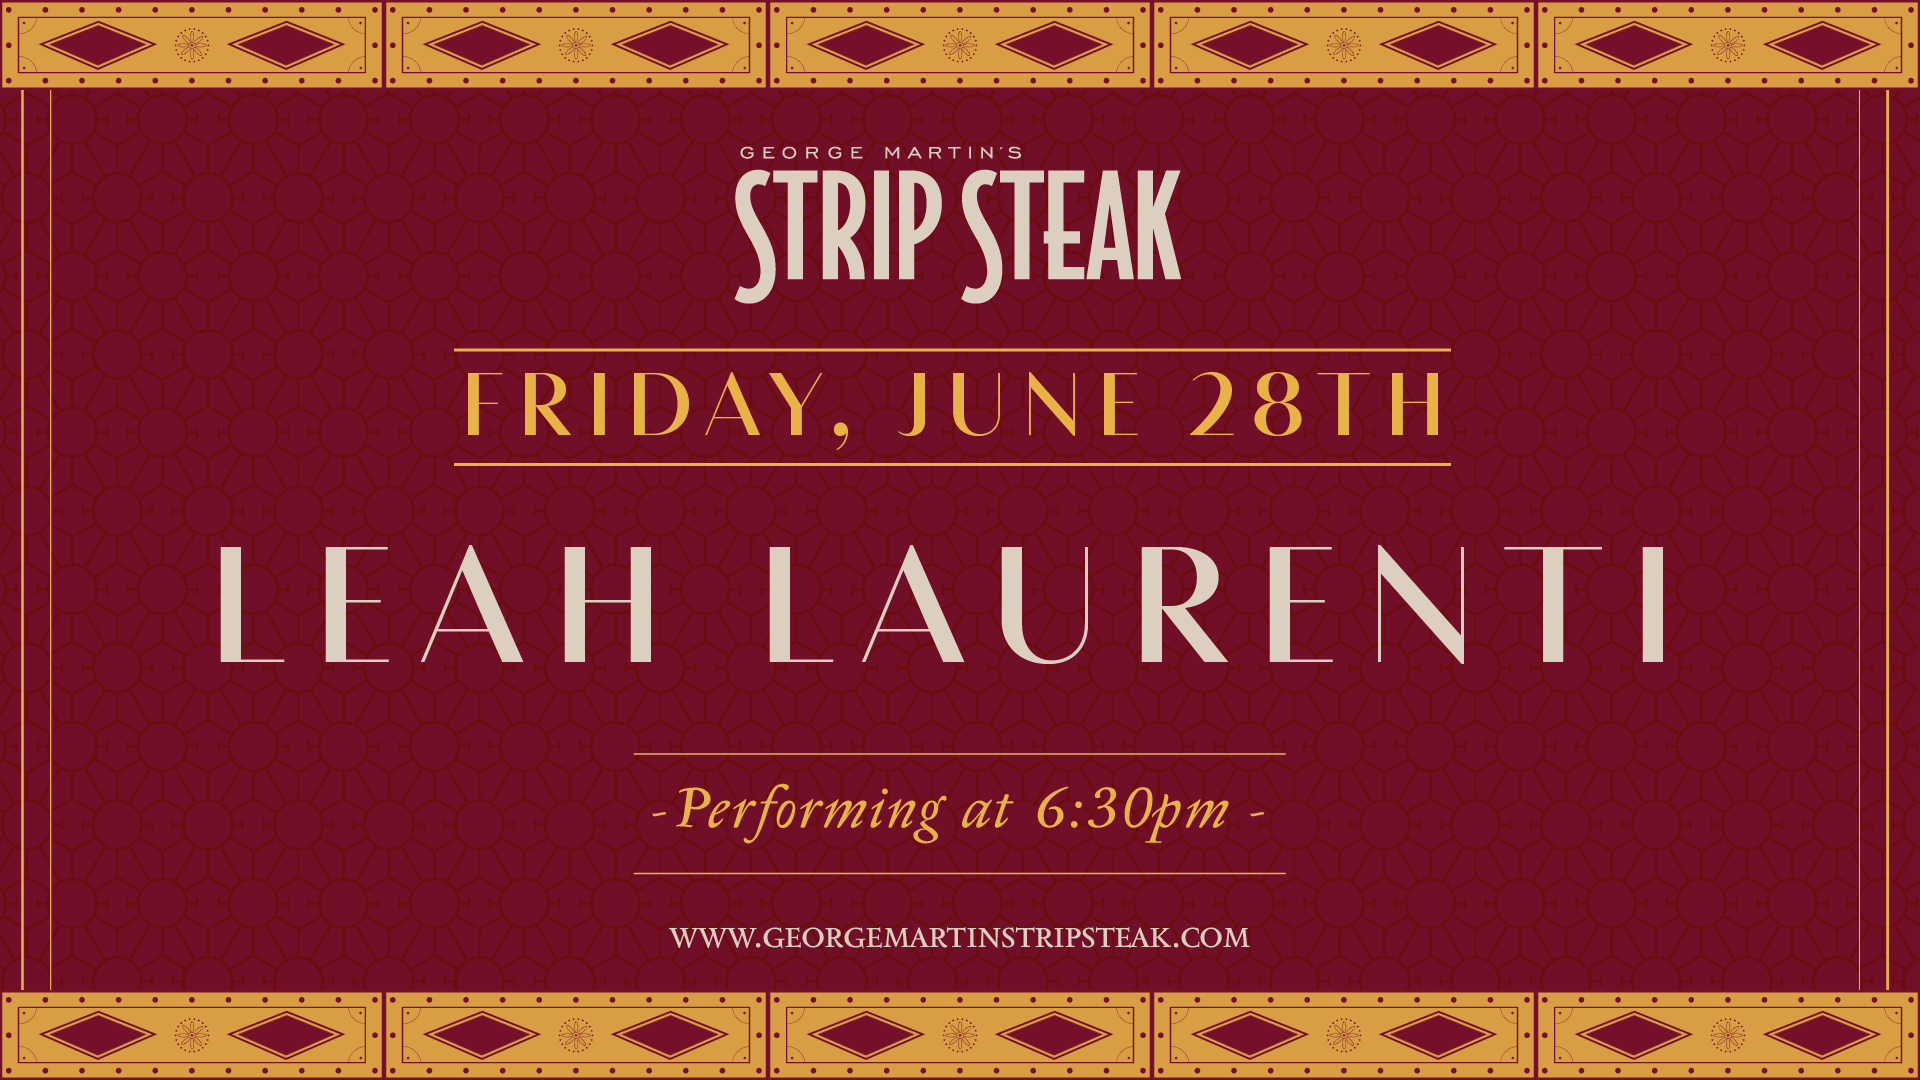 Flyer for live music with Leah Laurenti on June 28th starting at 6:30pm.